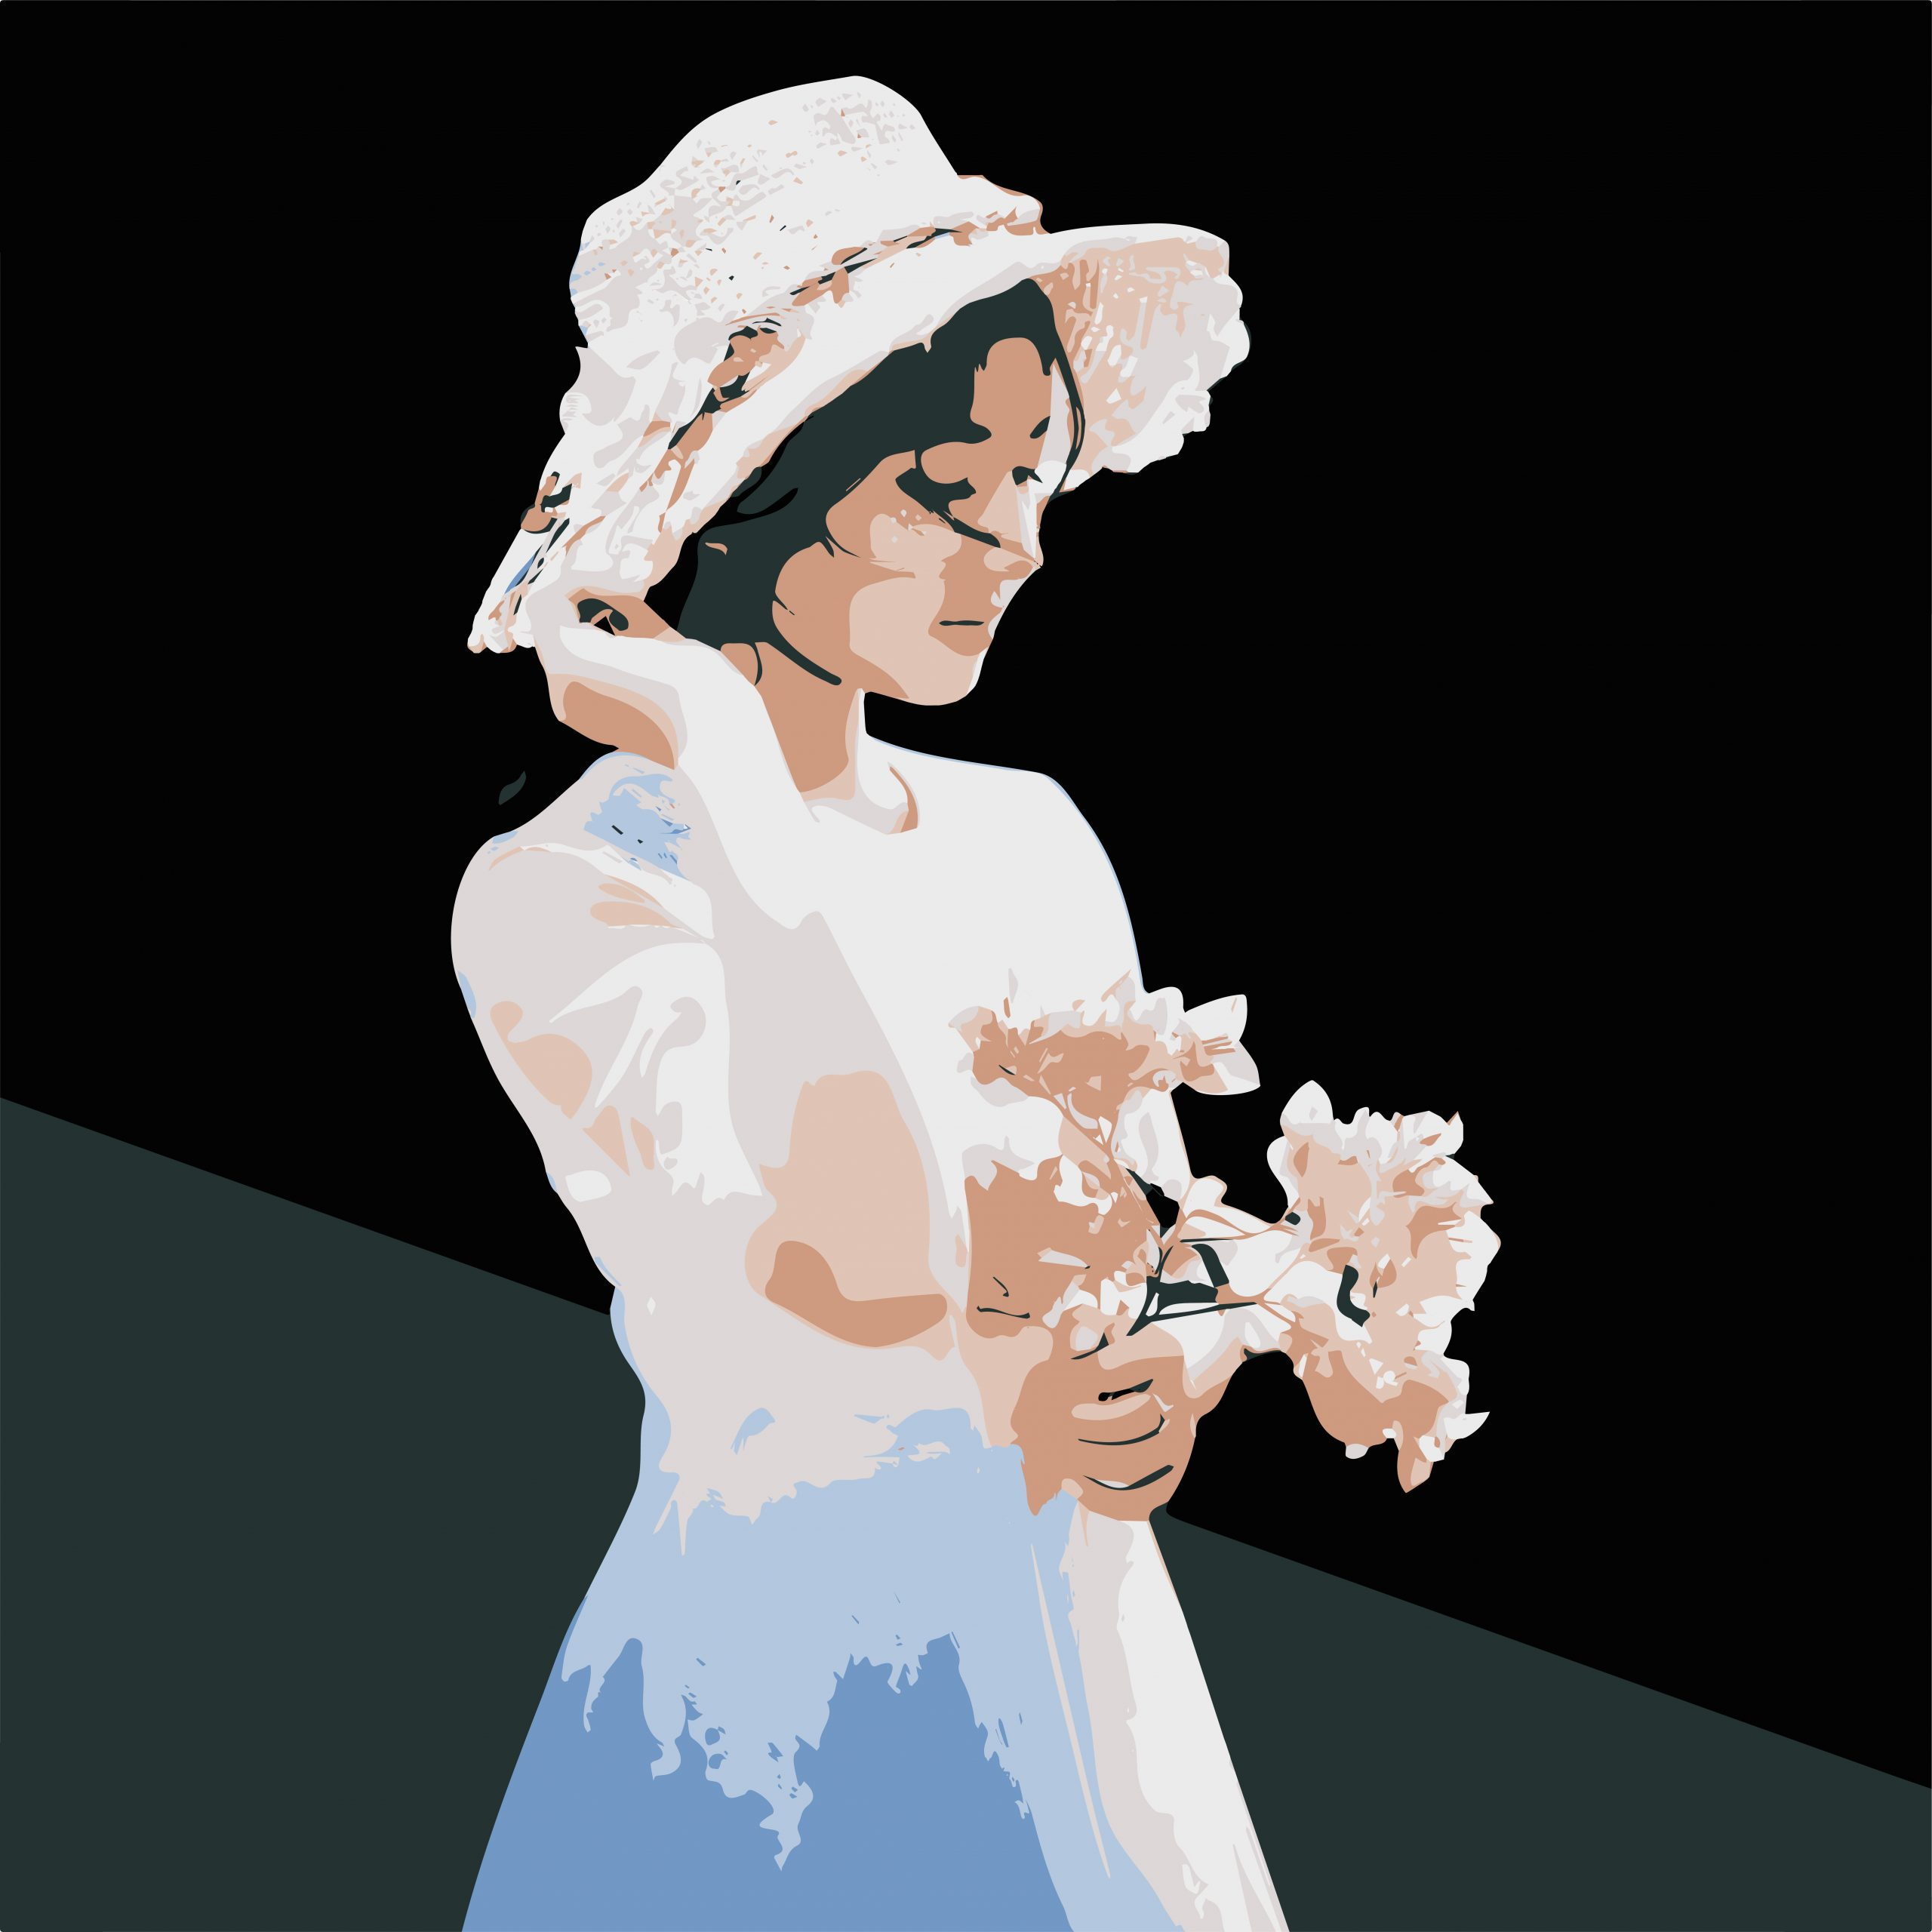 A girl with flowers illustration